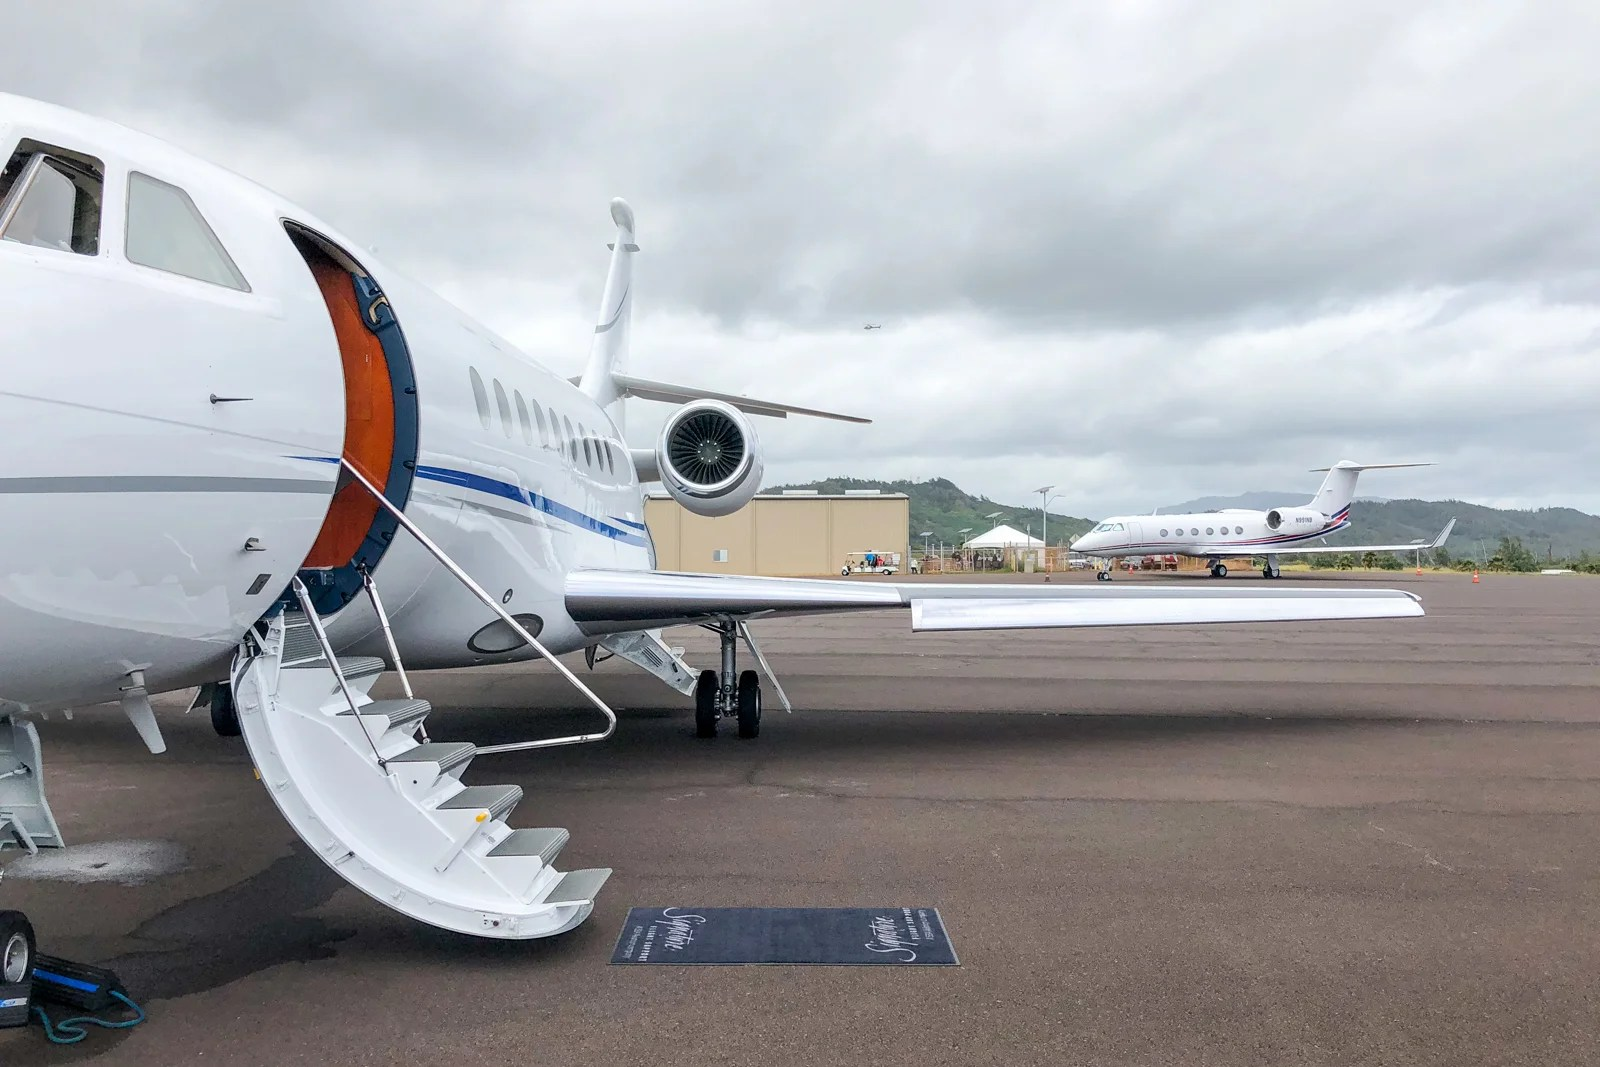 The cheapest ways to get the private jet experience - The Points Guy